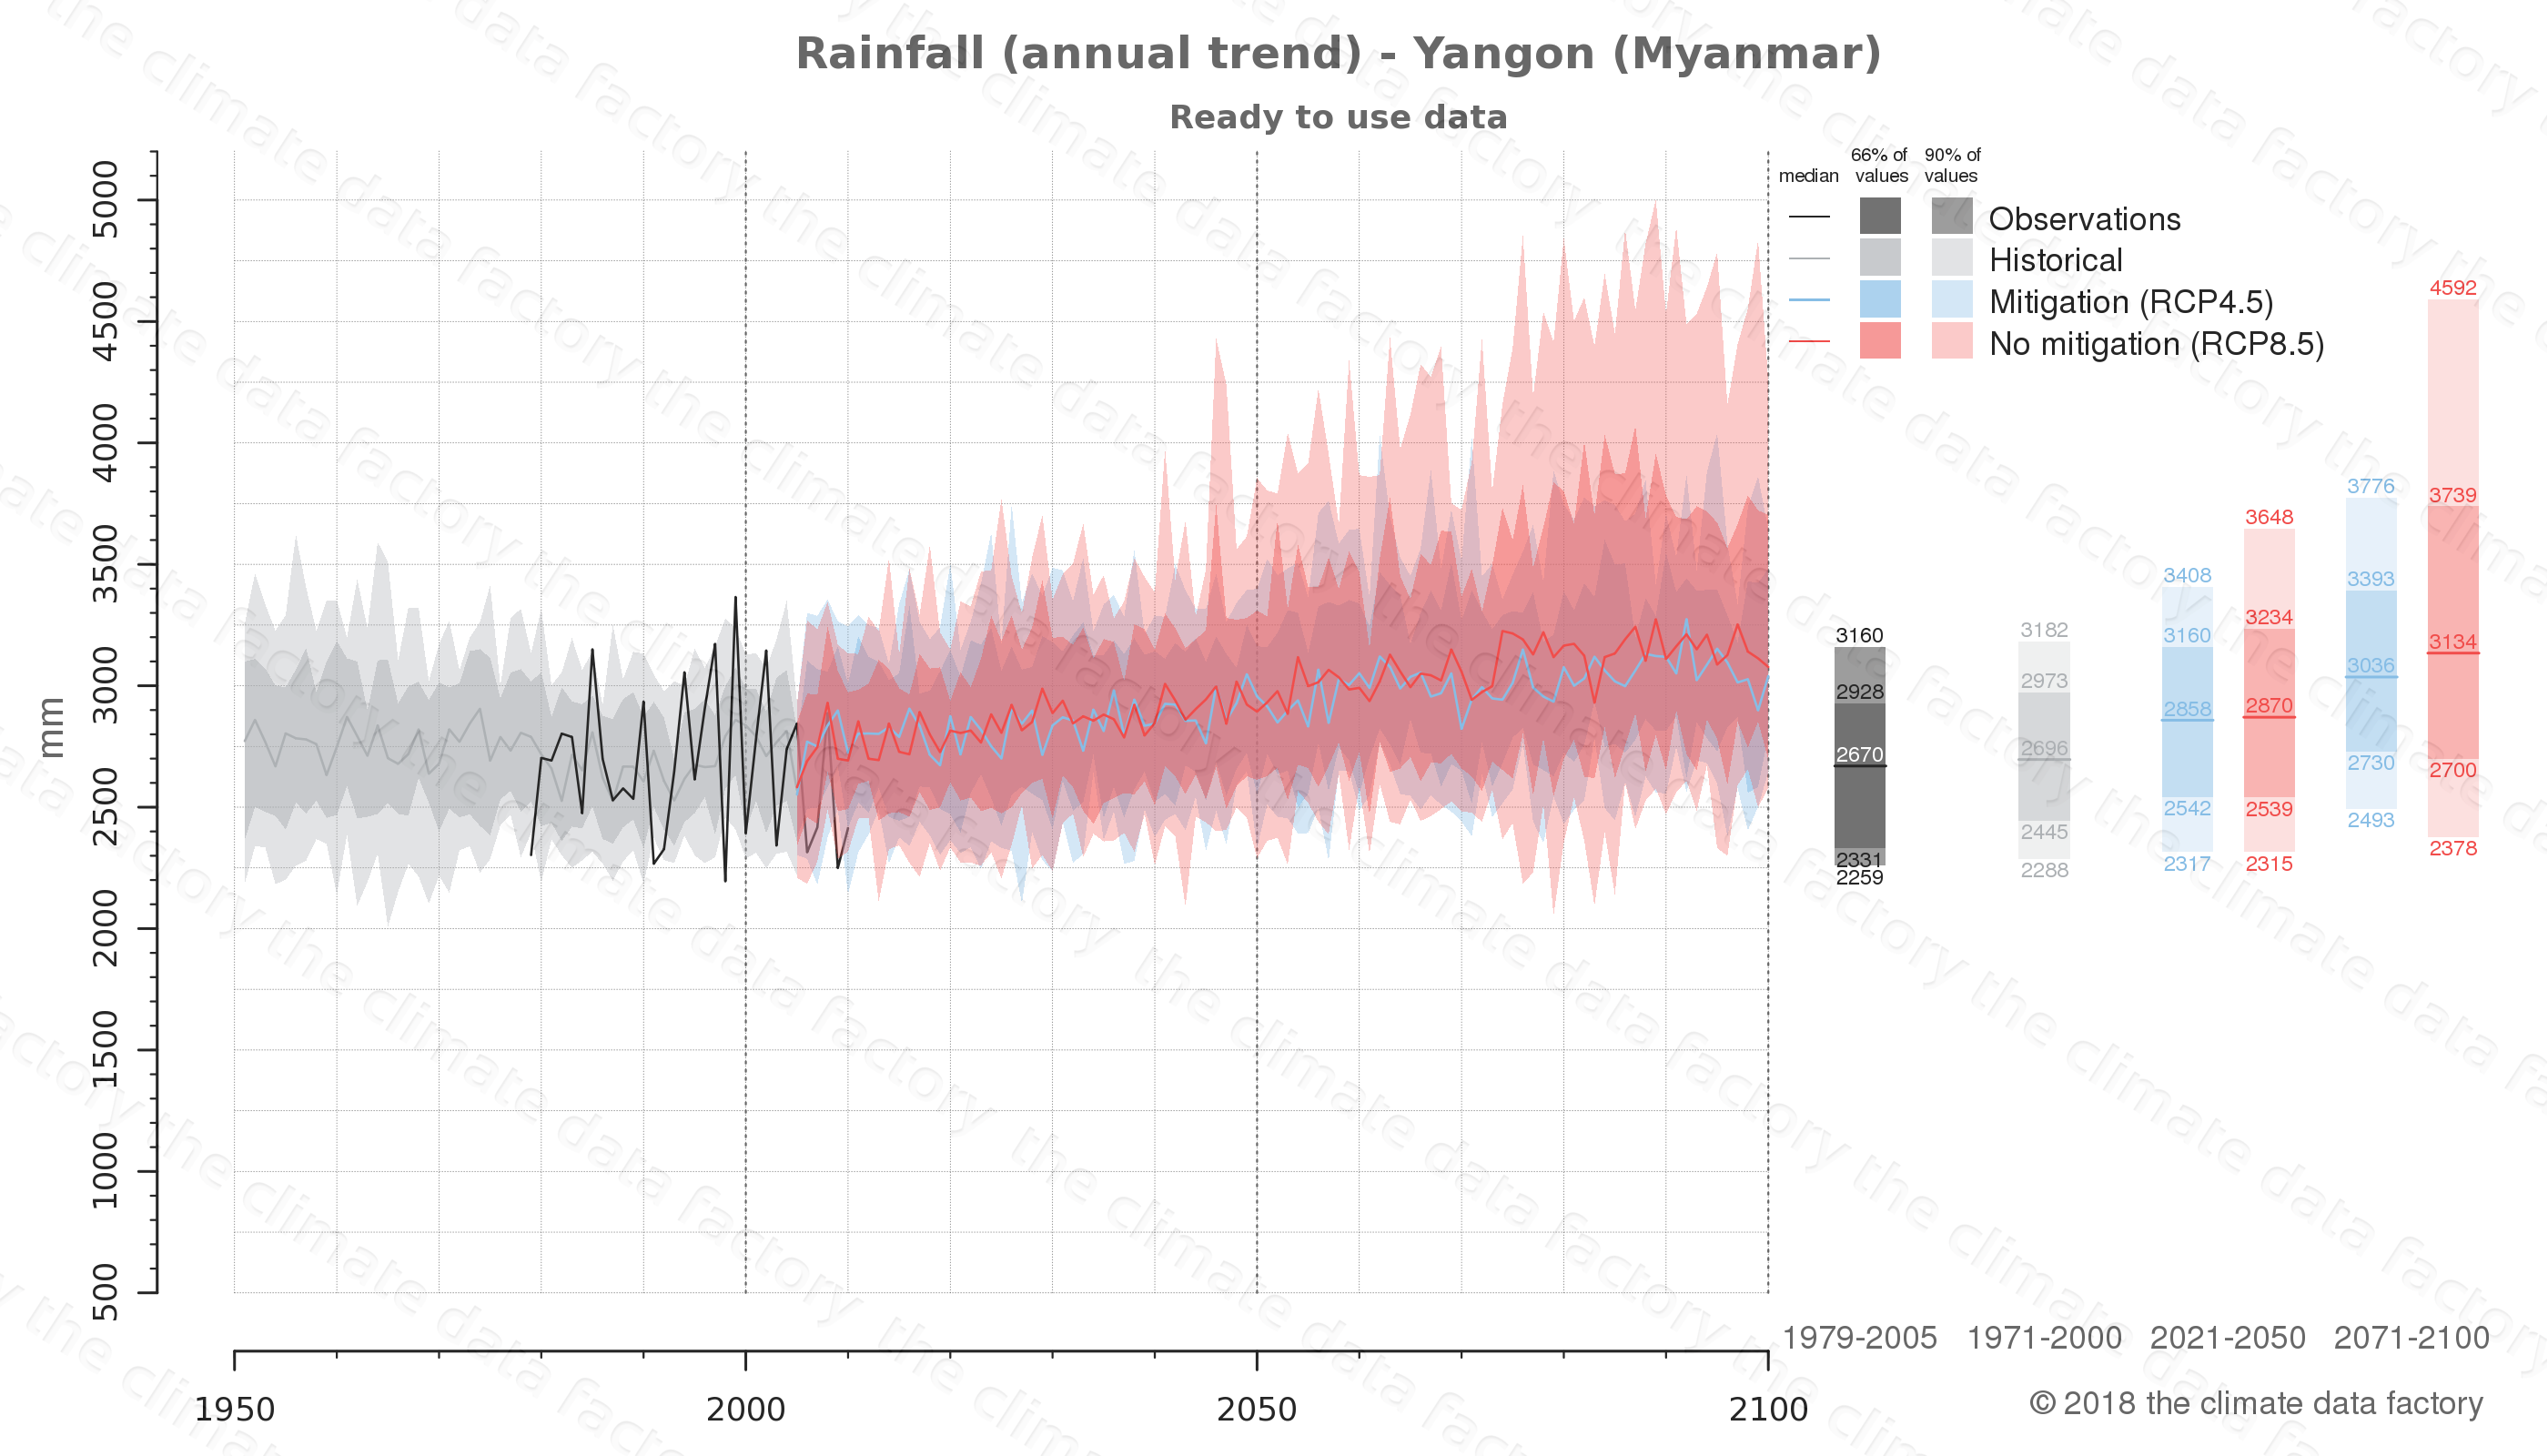 climate change data policy adaptation climate graph city data rainfall yangon myanmar